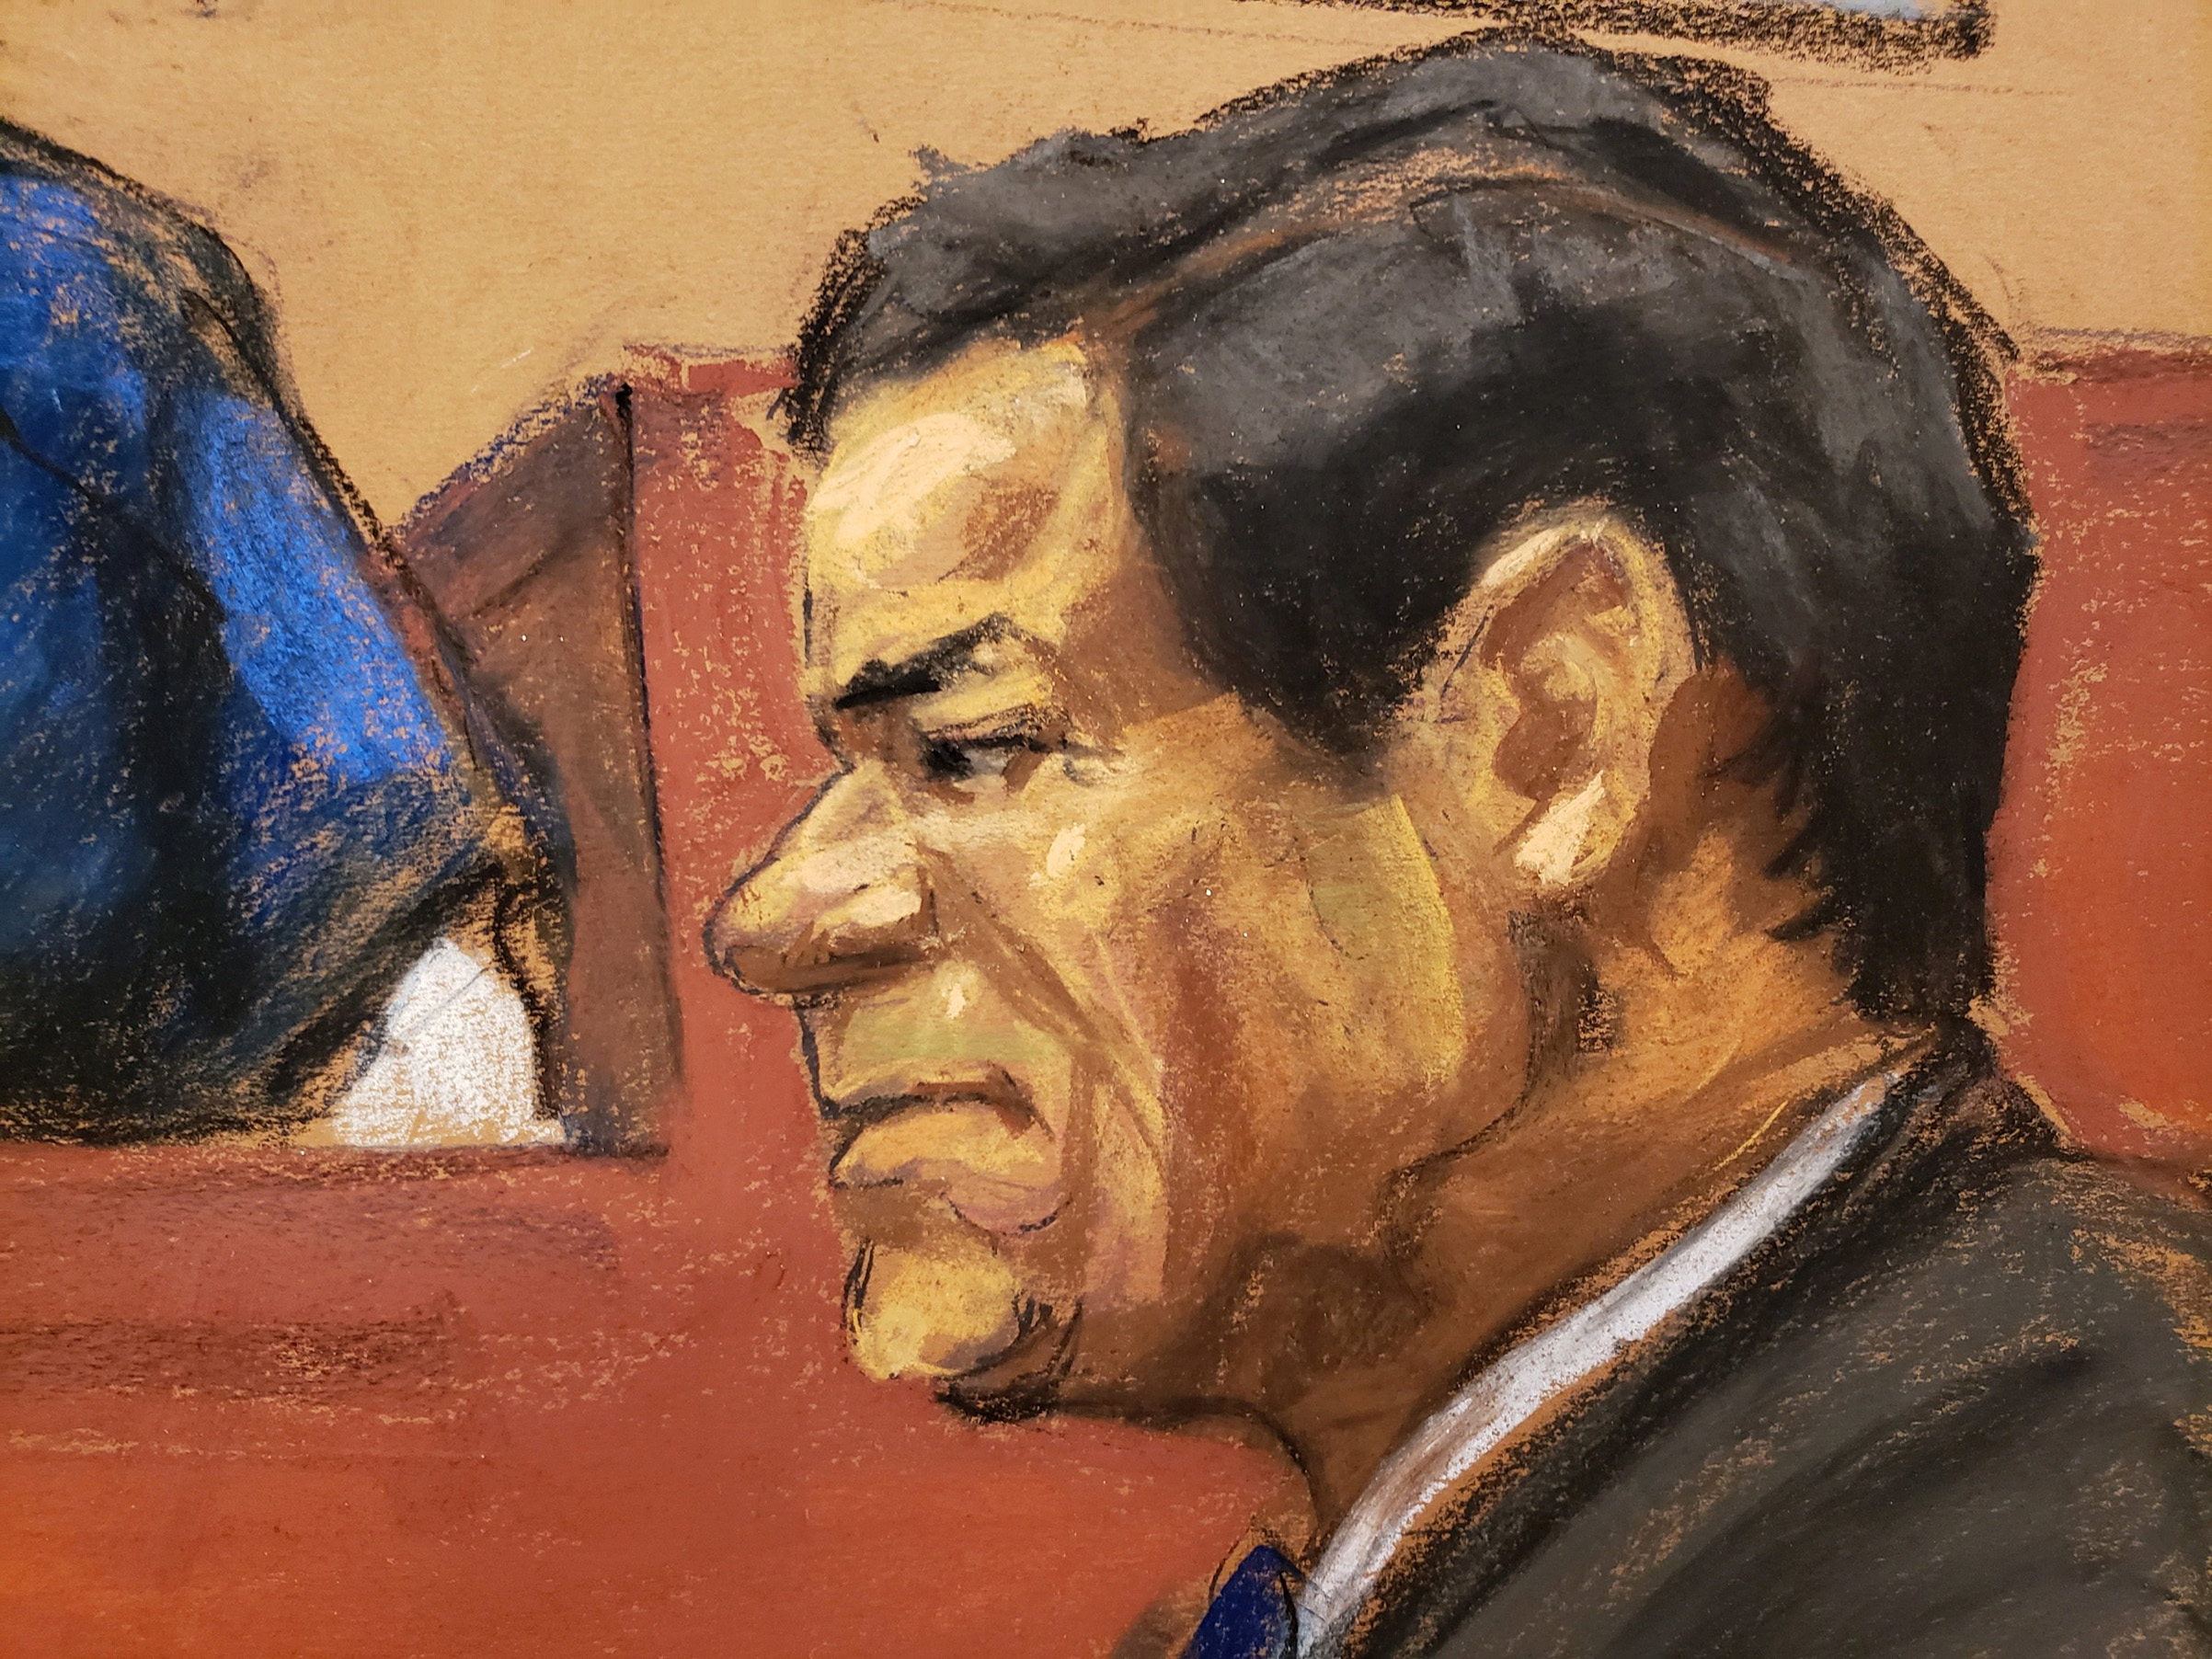 The accused Mexican drug lord Joaquin  El Chapo  Guzman listens to a testimony by Isaias Valdez Rios (not shown) in this courtroom sketch during Guzman's trial in Brooklyn federal court in New York City, on Jan. 24, 2019.